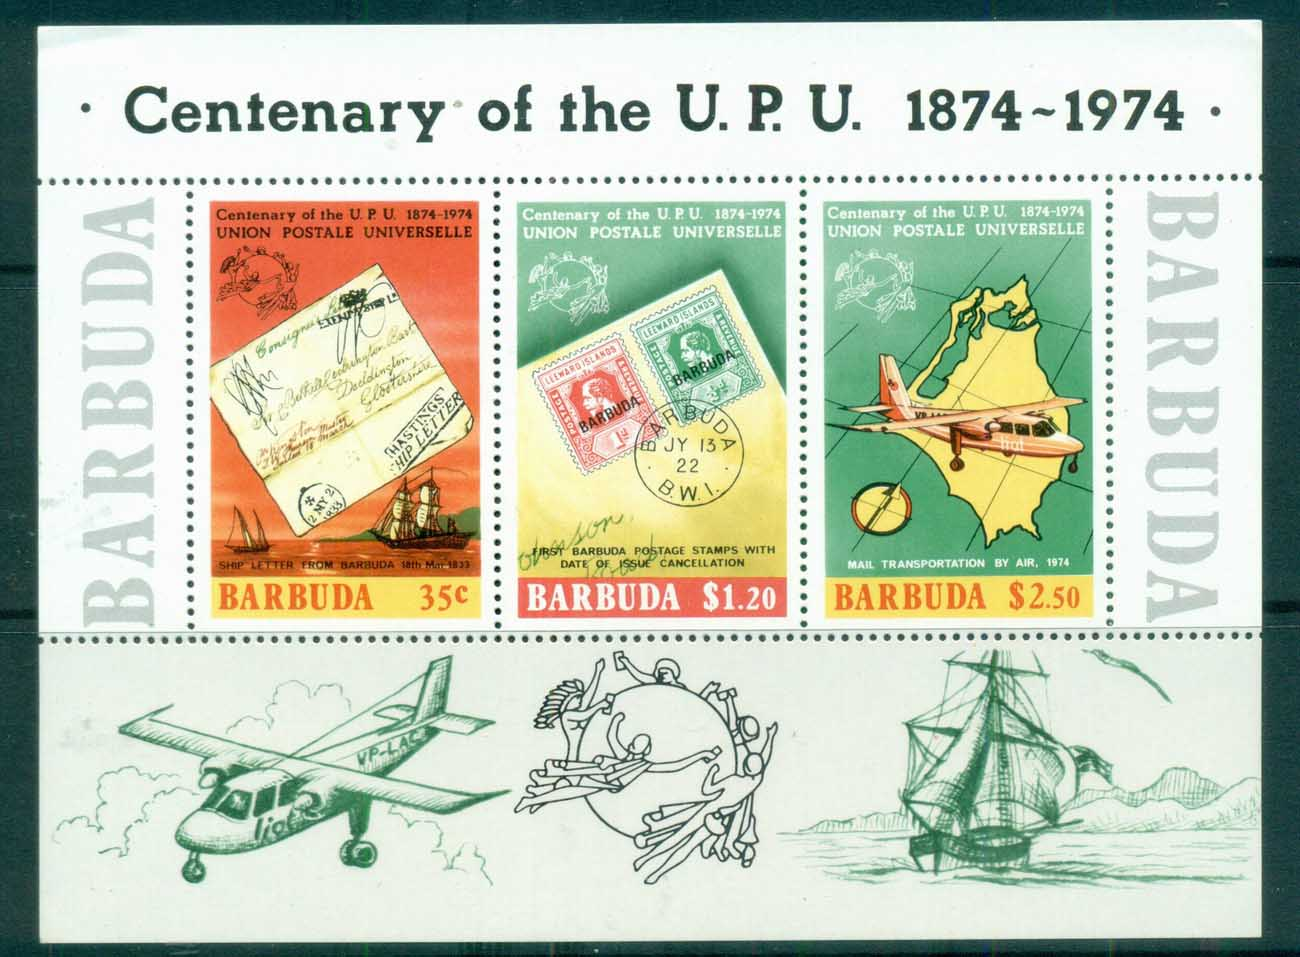 Barbuda 1974 UPU Cent. MS MUH